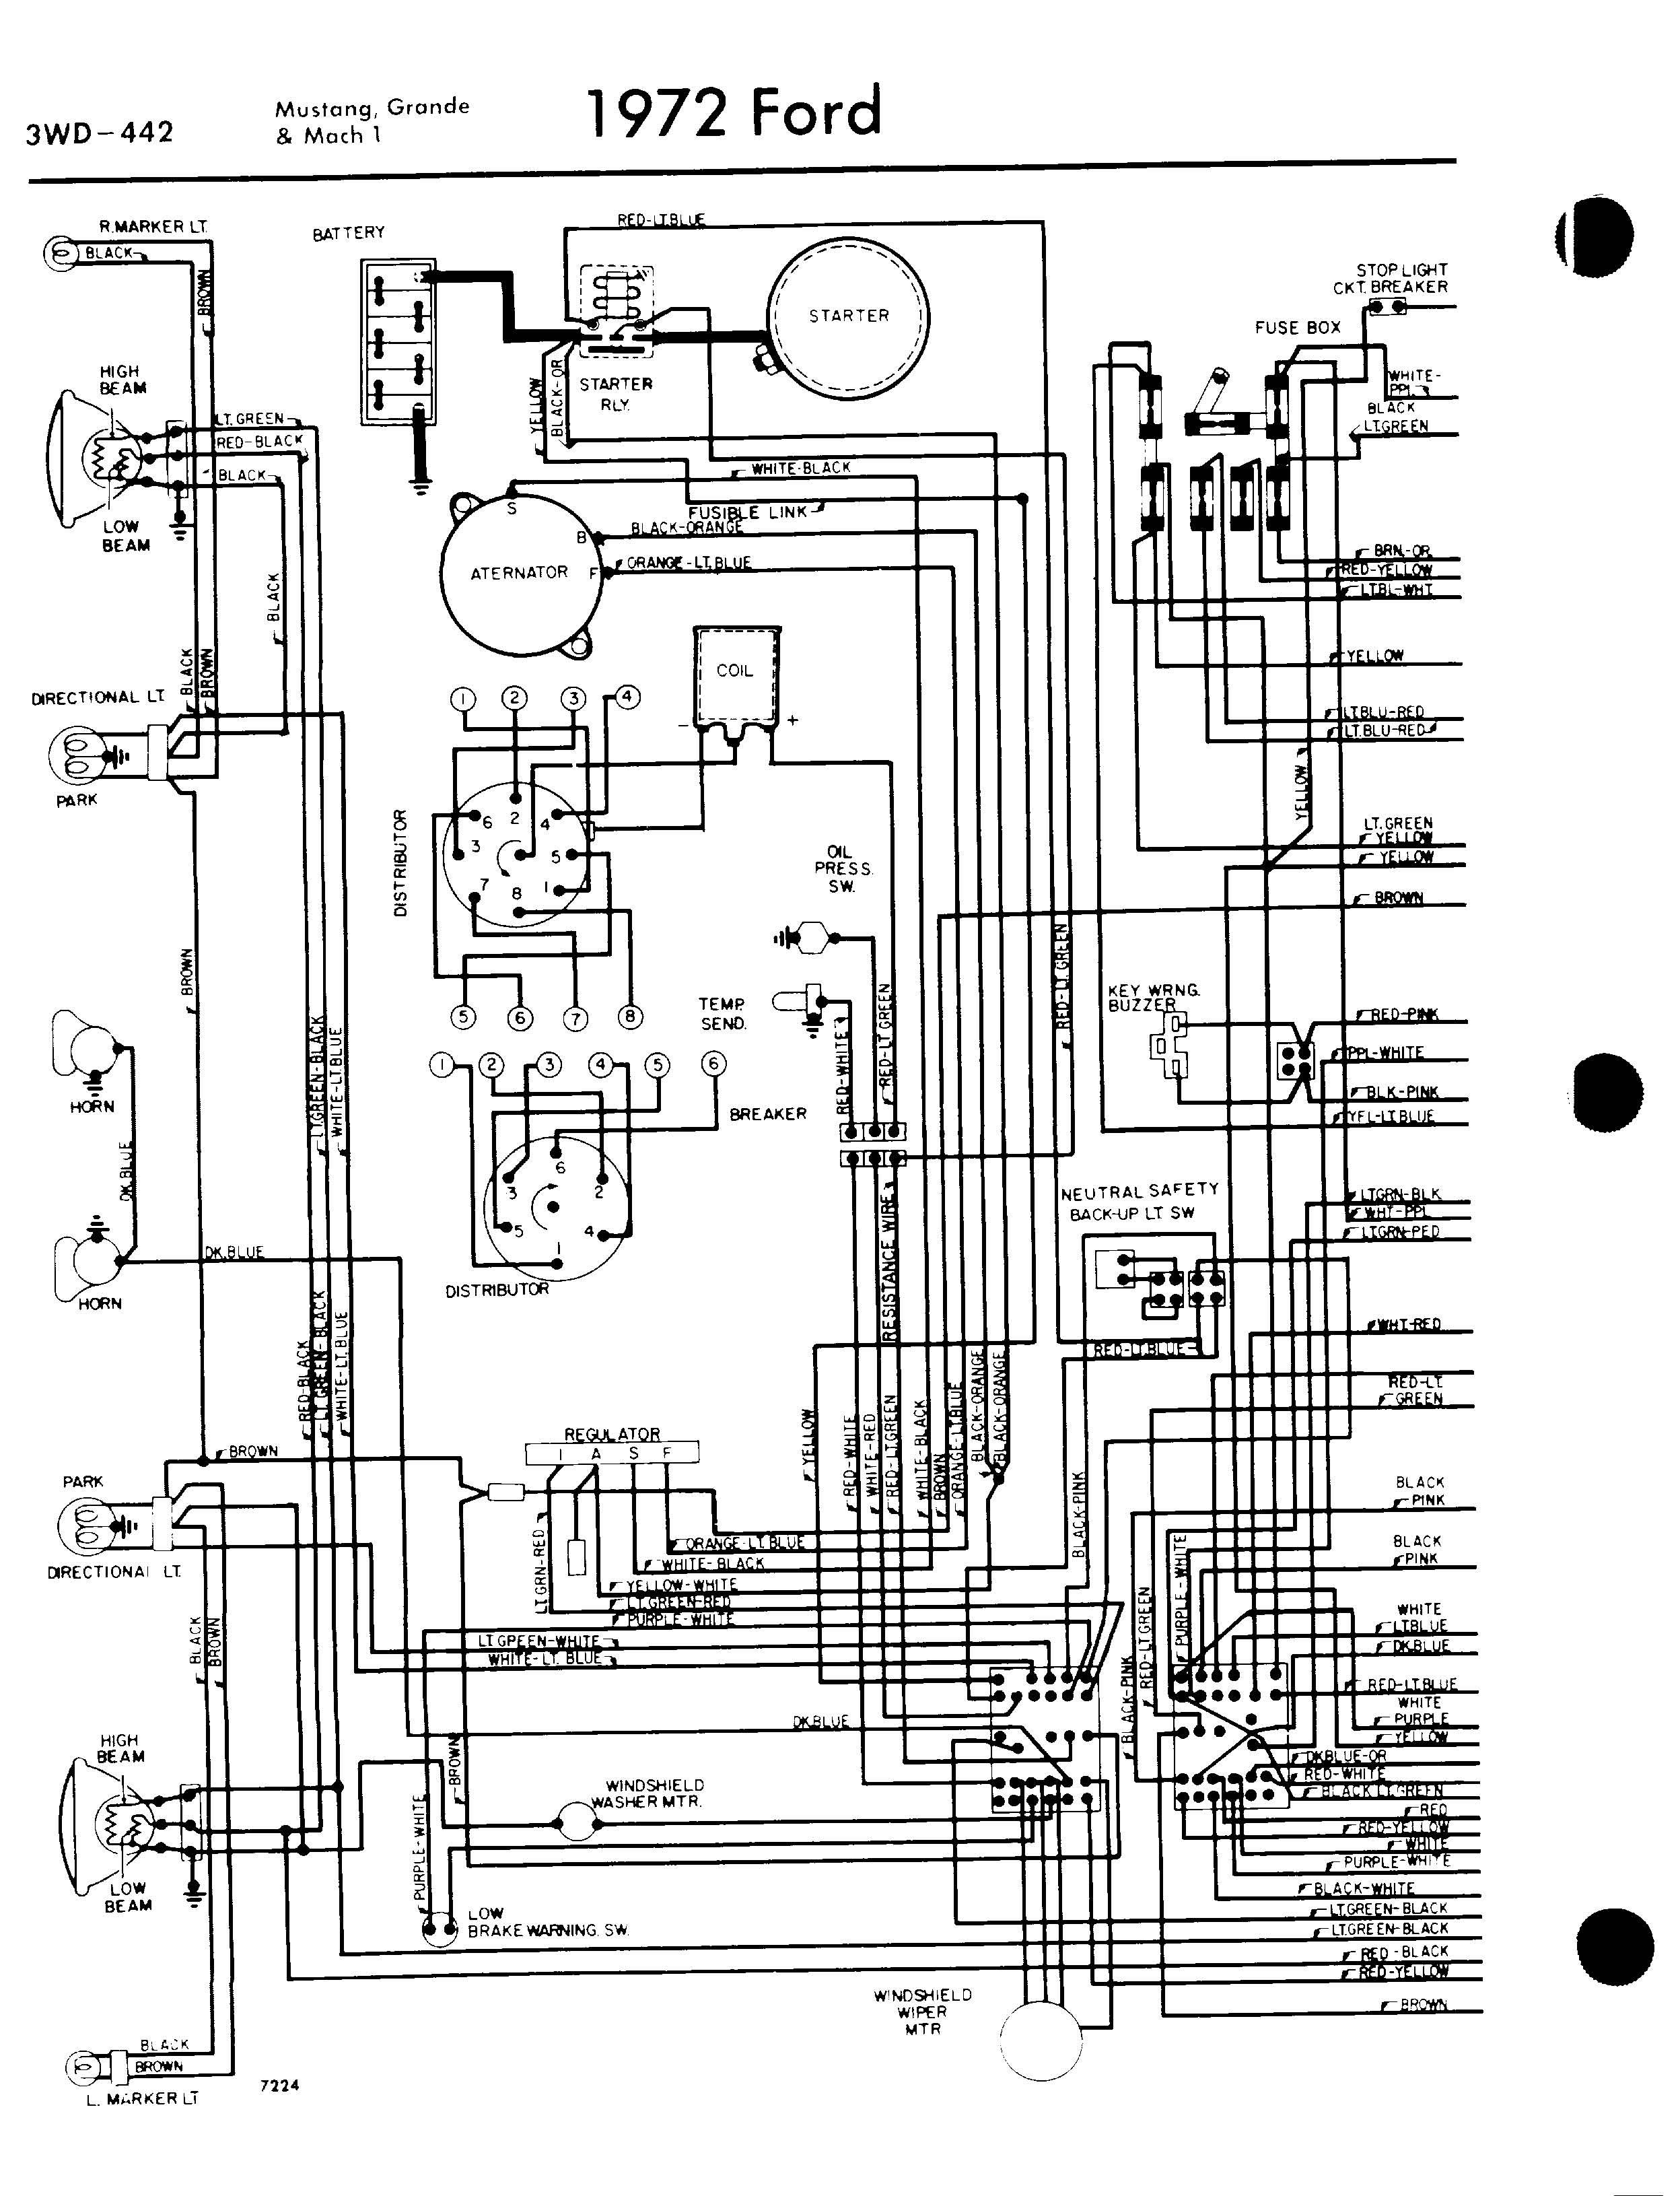 71af7a58e095e6a7716b32f1b23e8bd2 72 mach1 alternator wire harness diagram yahoo search results 1970 mustang wiring diagram at soozxer.org